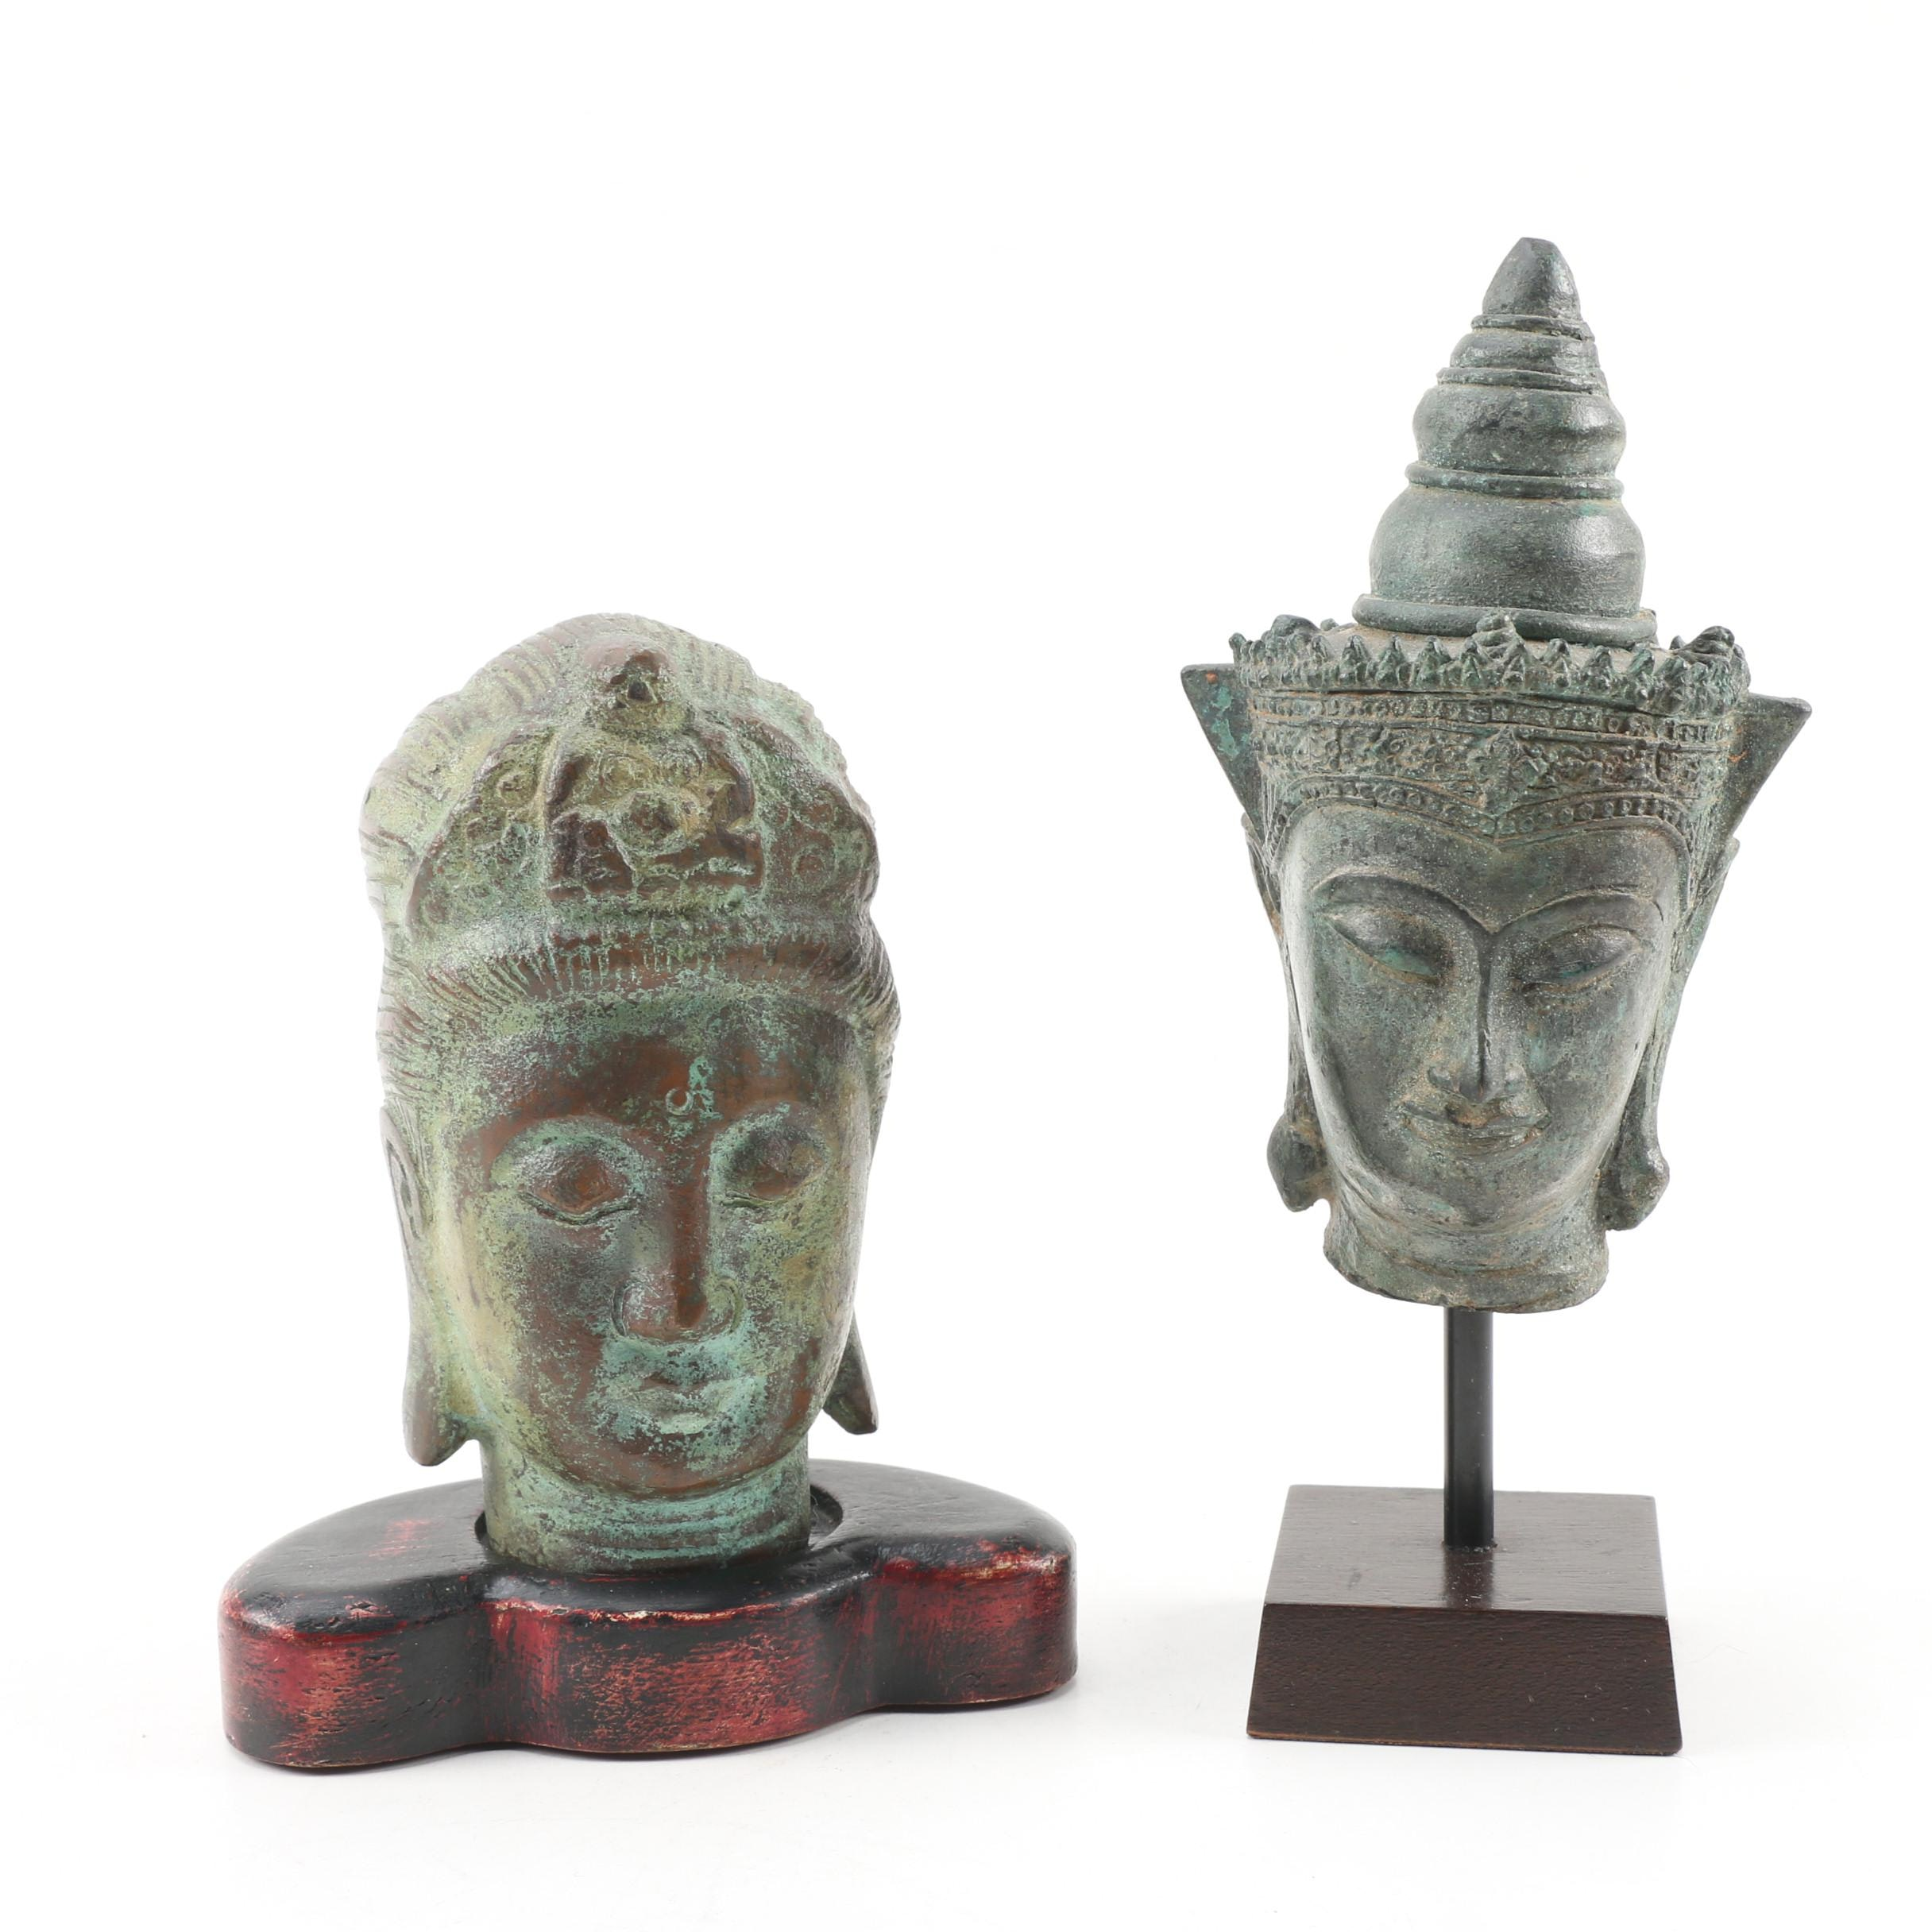 Thai and Chinese Decorative Buddhist Metal Busts